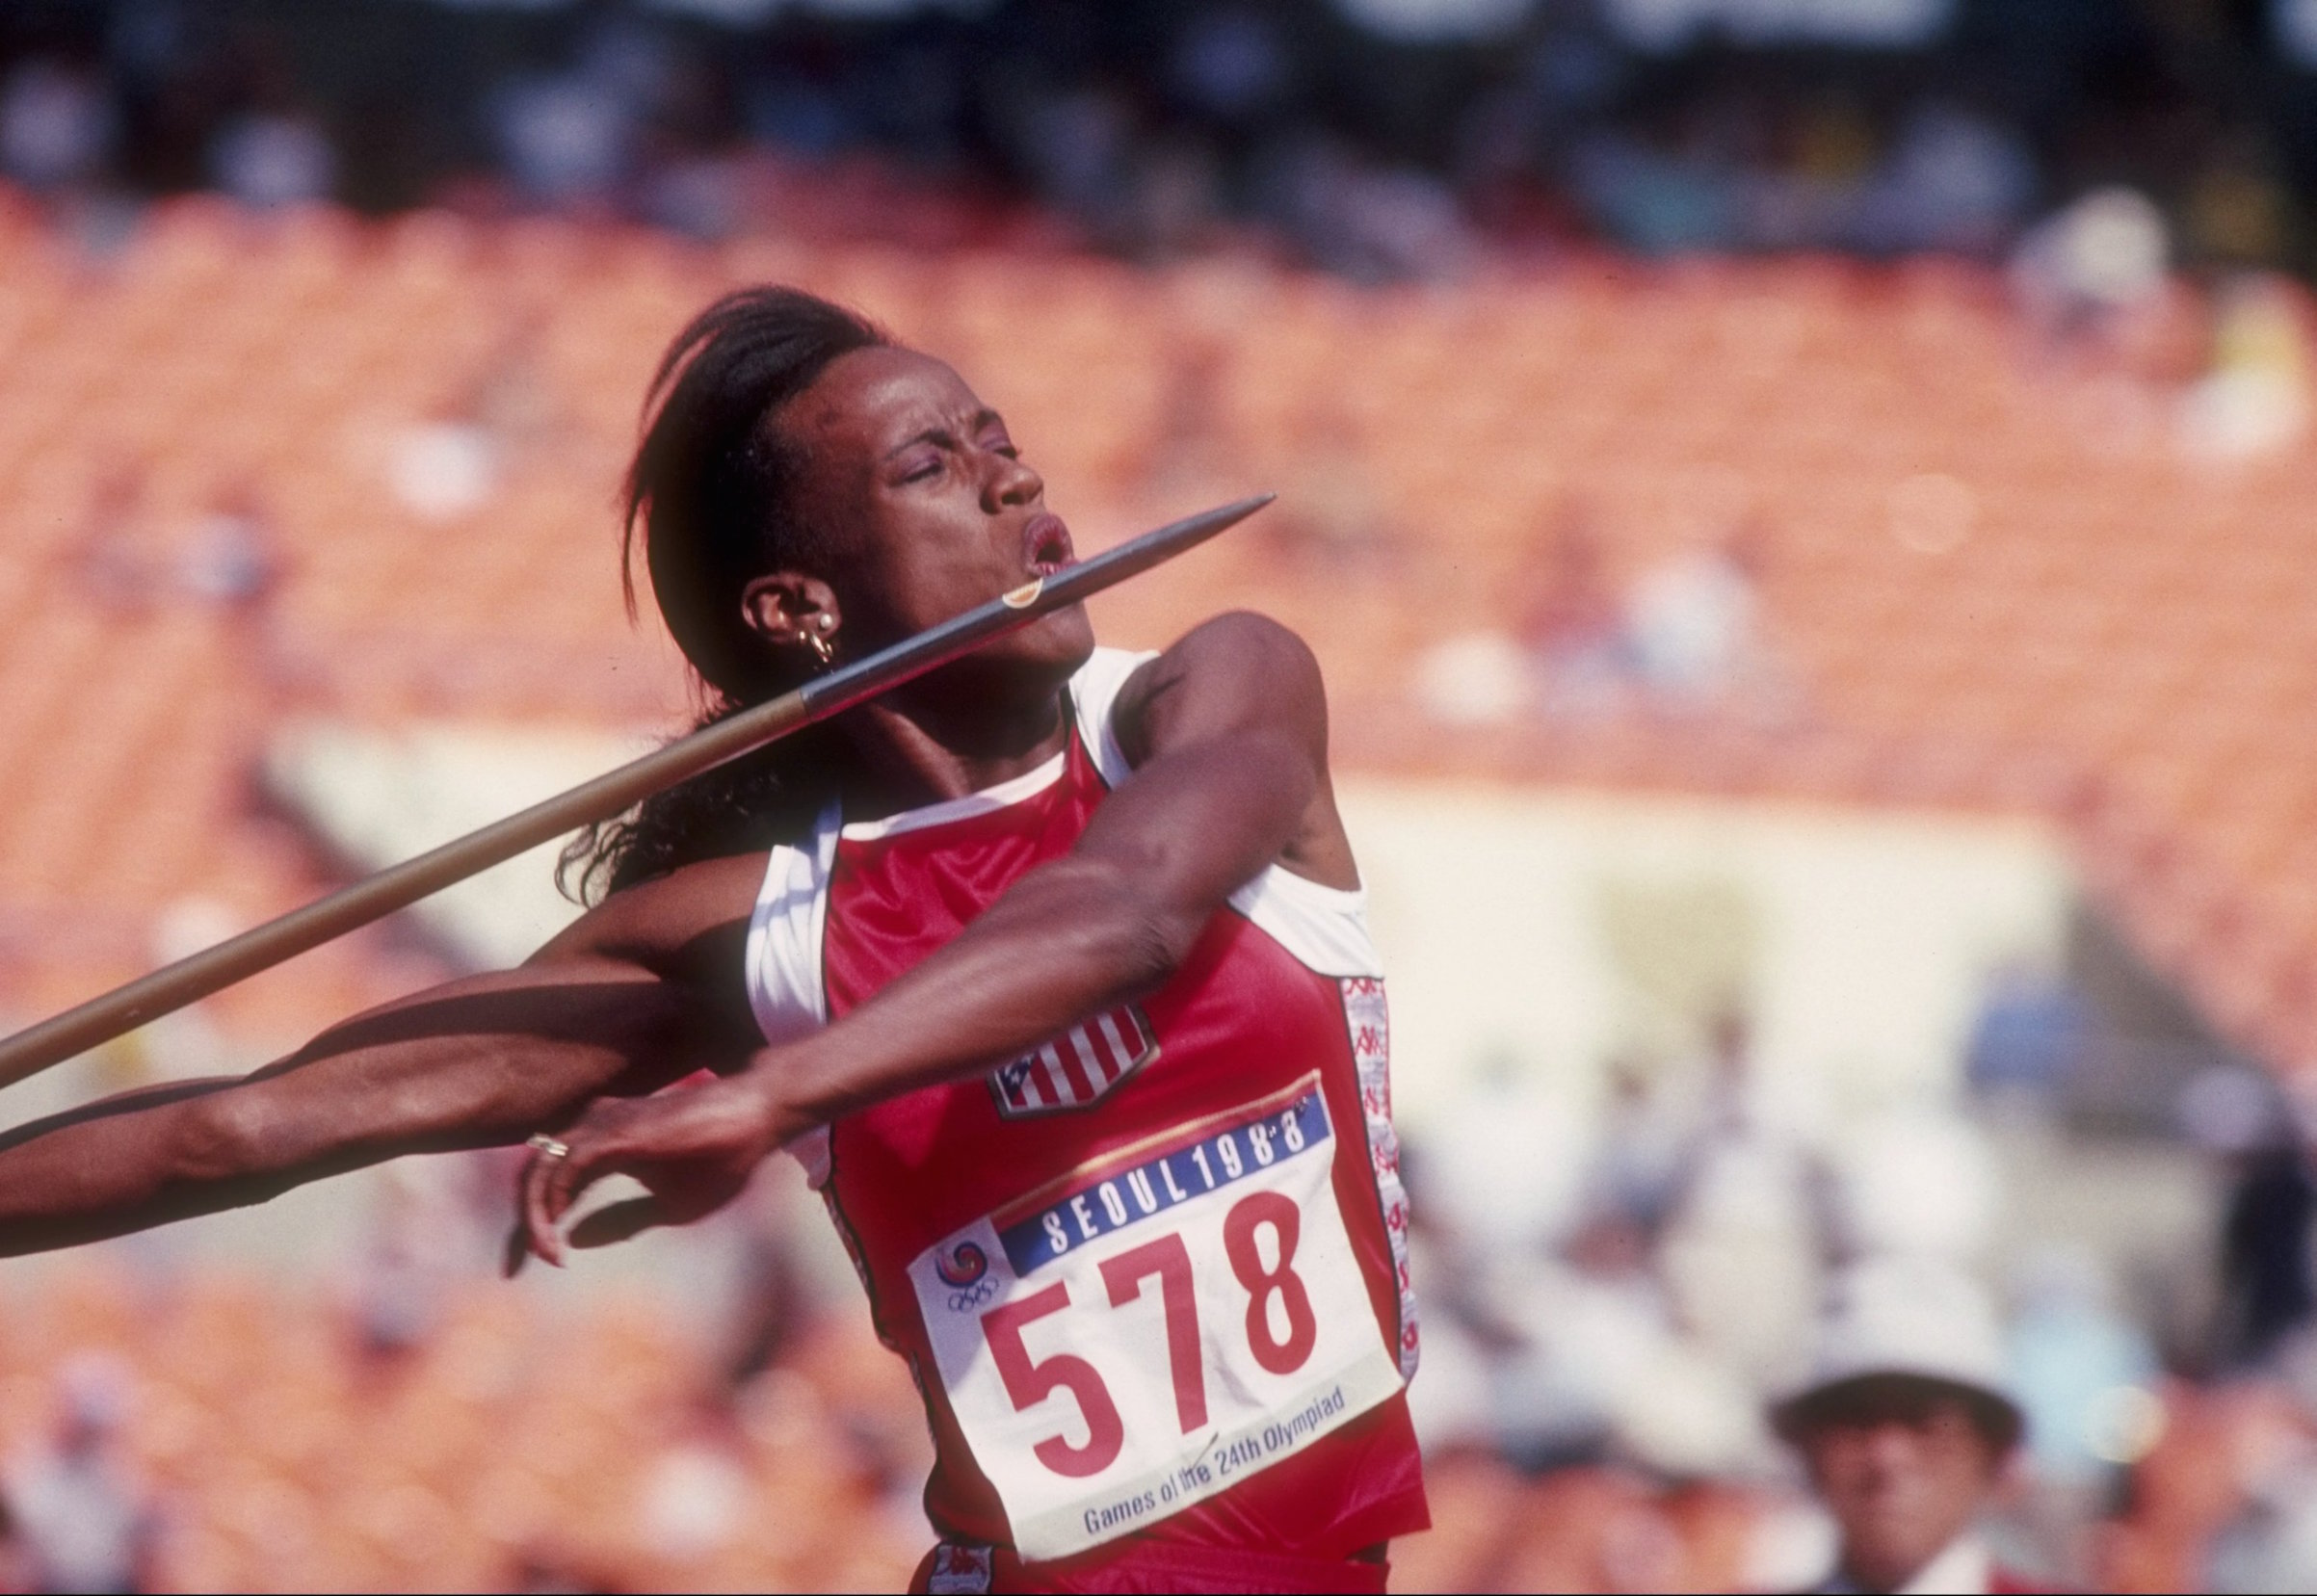 Jackie Joyner-Kersee of the United States is ready to throw the javelin during the Olympic Games in Seoul, South Korea, in 1988. Tony Duffy—Getty Images